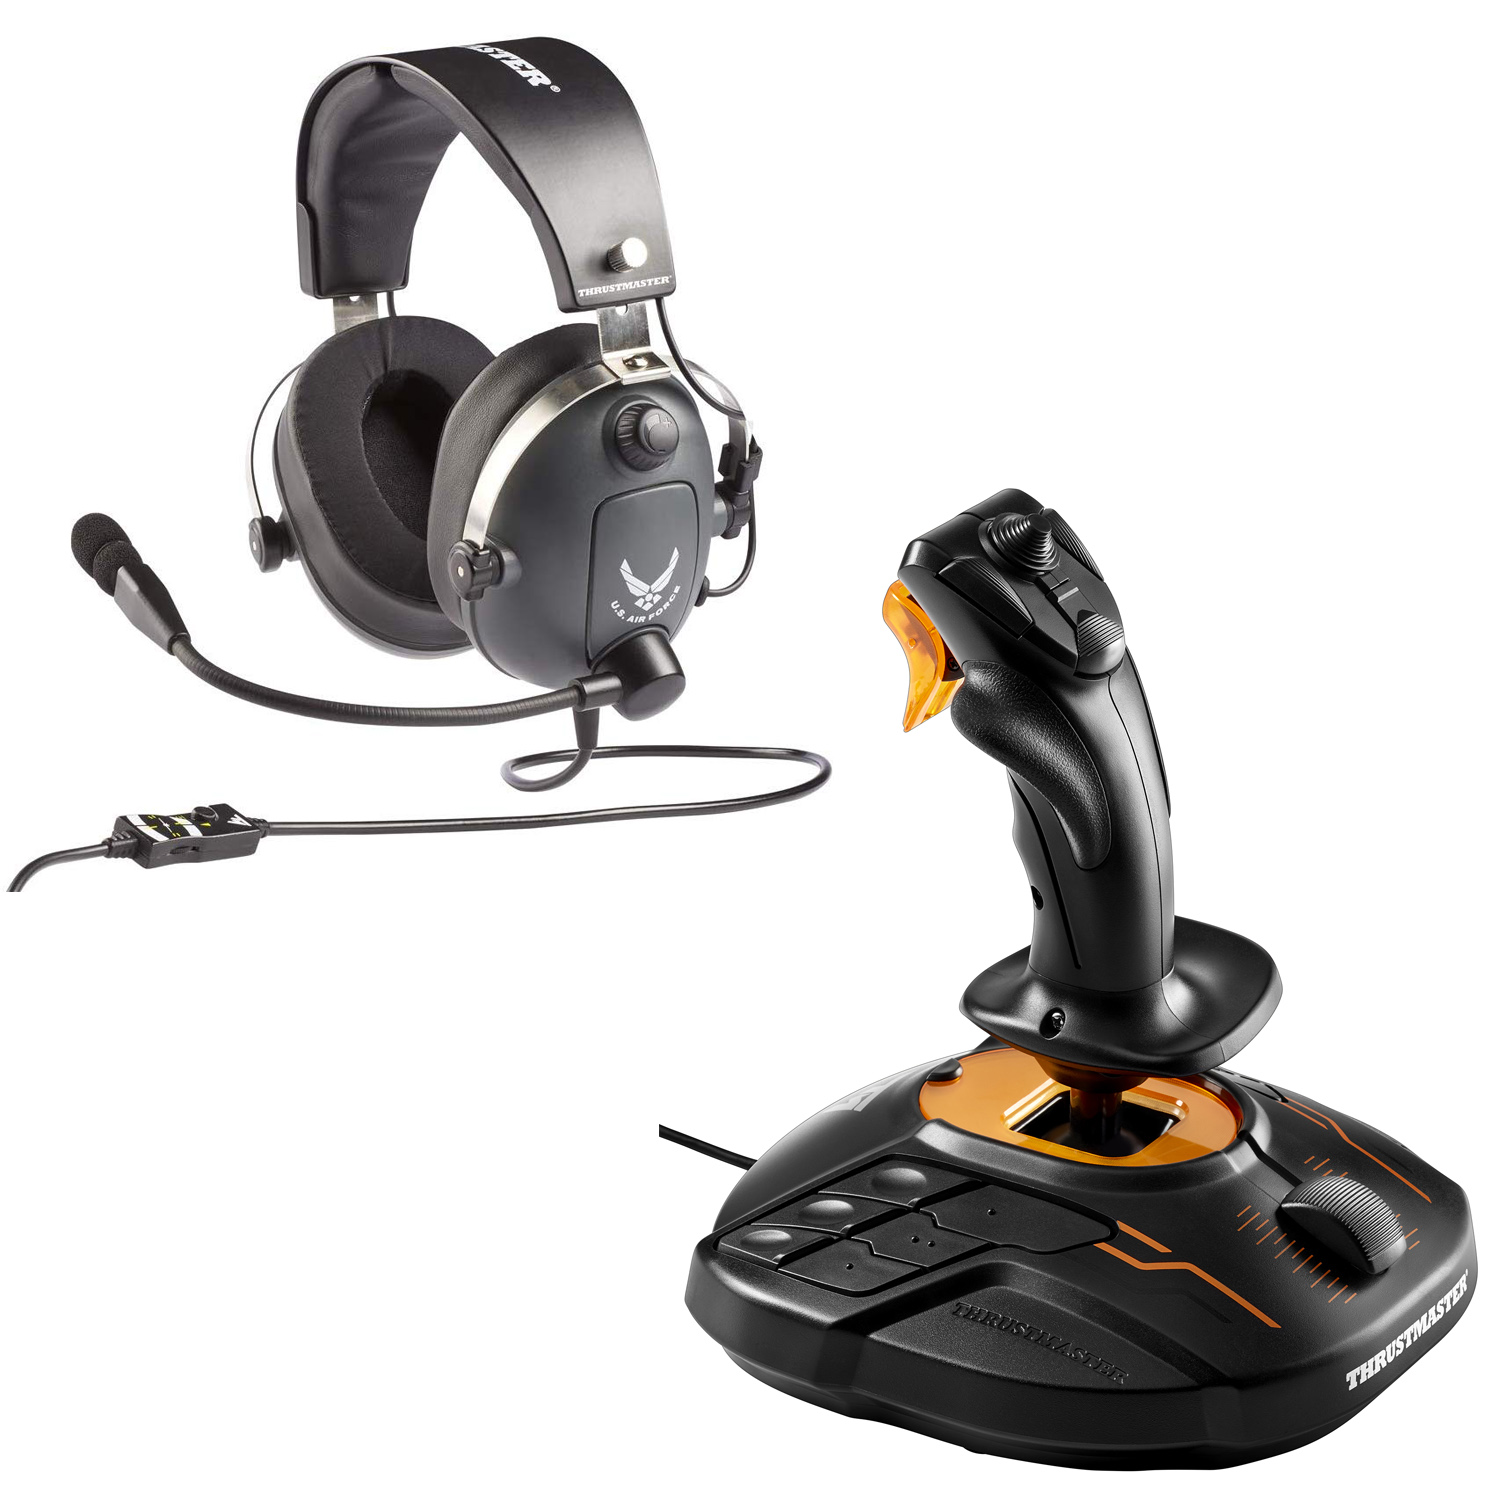 Thrustmaster, Y-Flying USAF Edition Headset + T16000M FCS, PC, Black, 02329